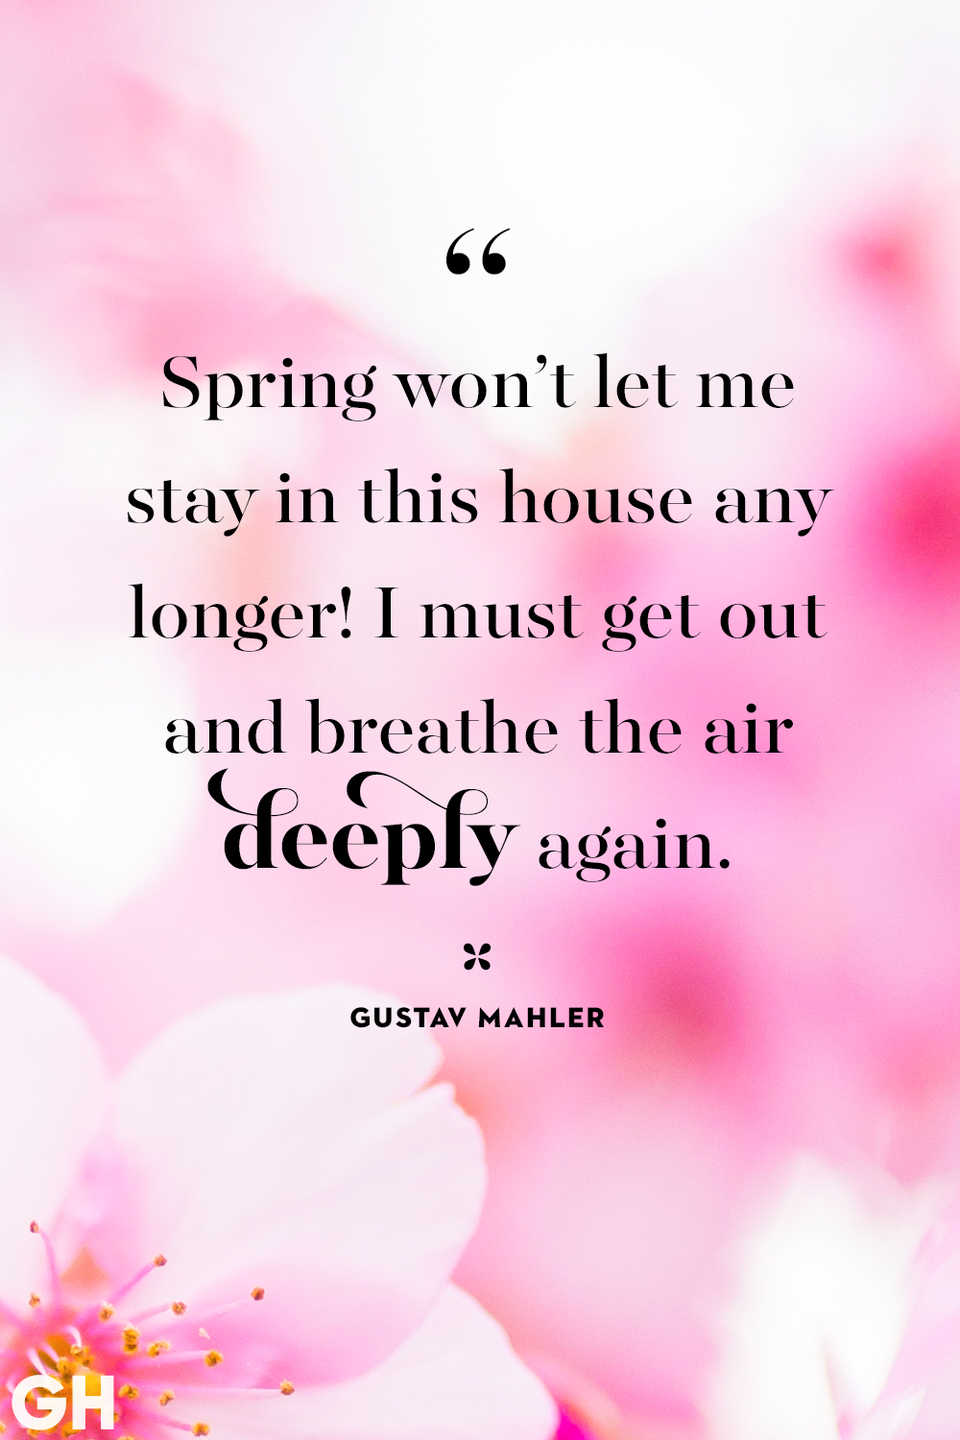 <p>Spring won't let me stay in this house any longer! I must get out and breathe the air deeply again.</p>